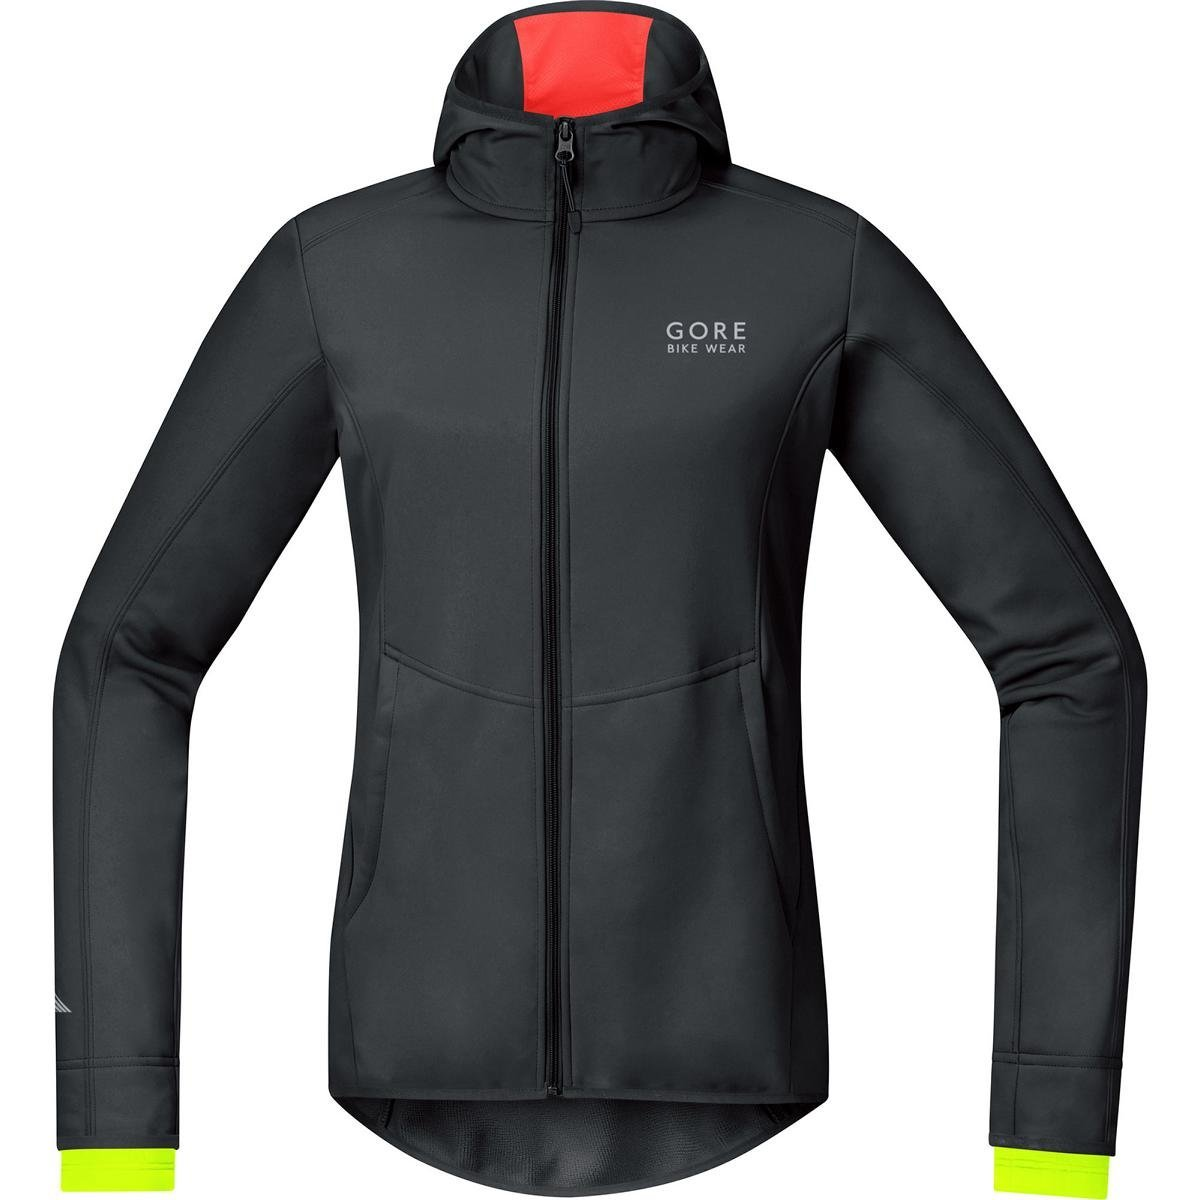 GORE WEAR Damen Element Windstopper Soft Shell Hoody Jacken & Anoraks Gore Windstopper Element Lady WS so Hoody Größe: 36 Schwarz/Neon Gelb